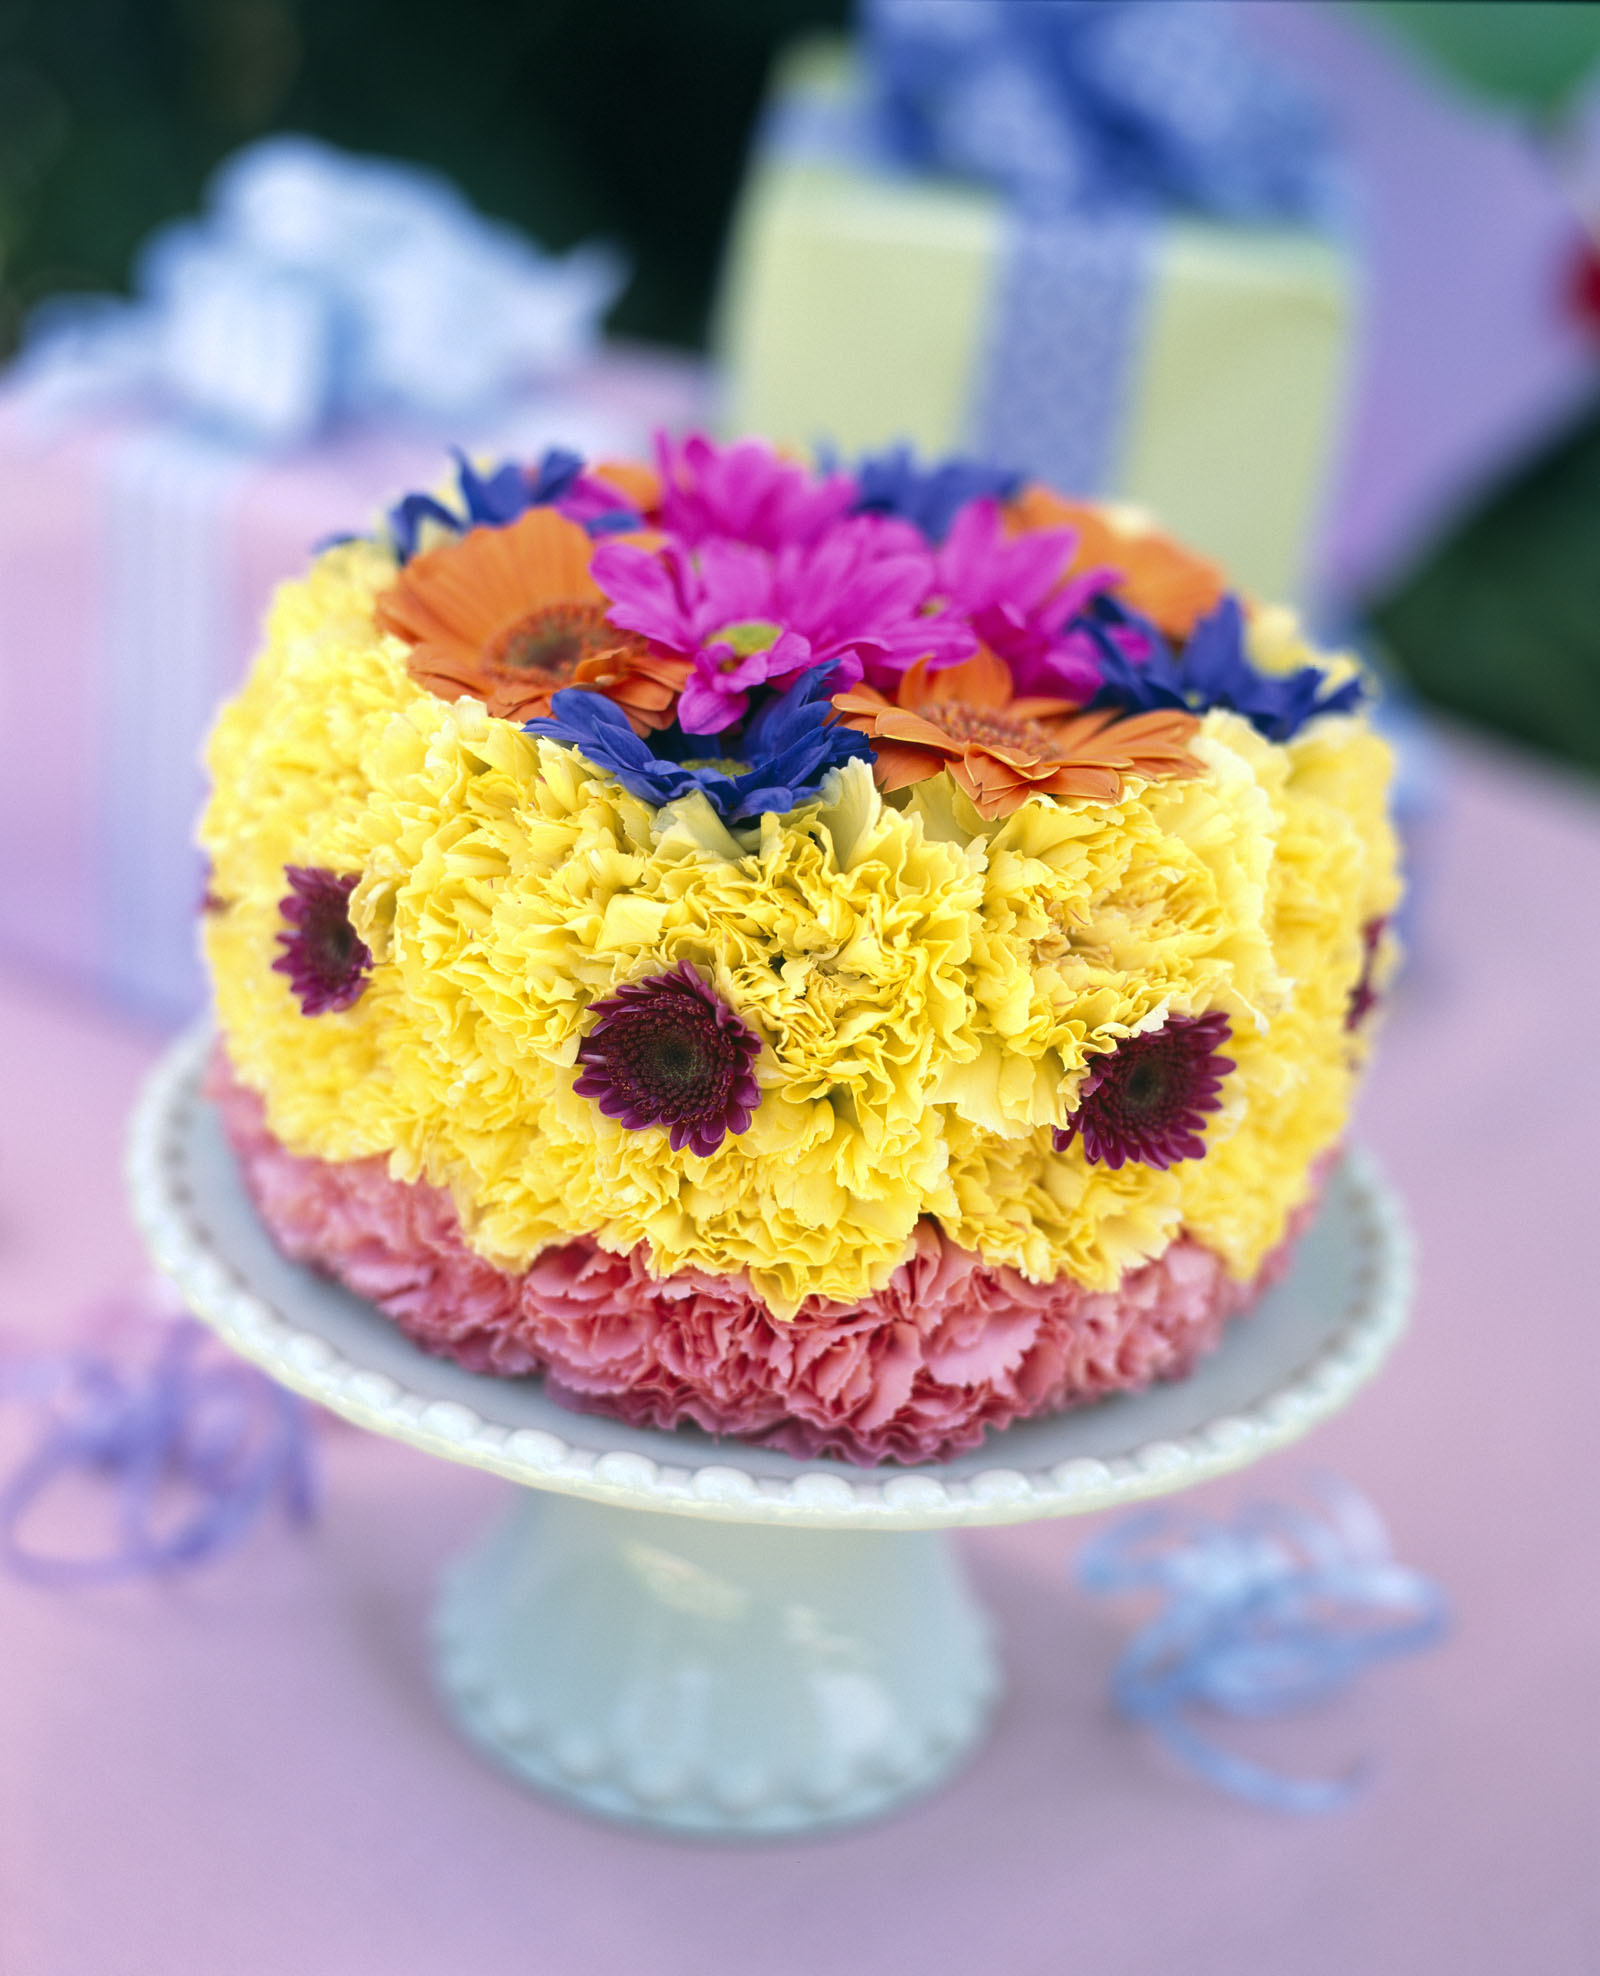 Enjoyable Floral Cake Episode 4 Style With A Smile Personalised Birthday Cards Beptaeletsinfo